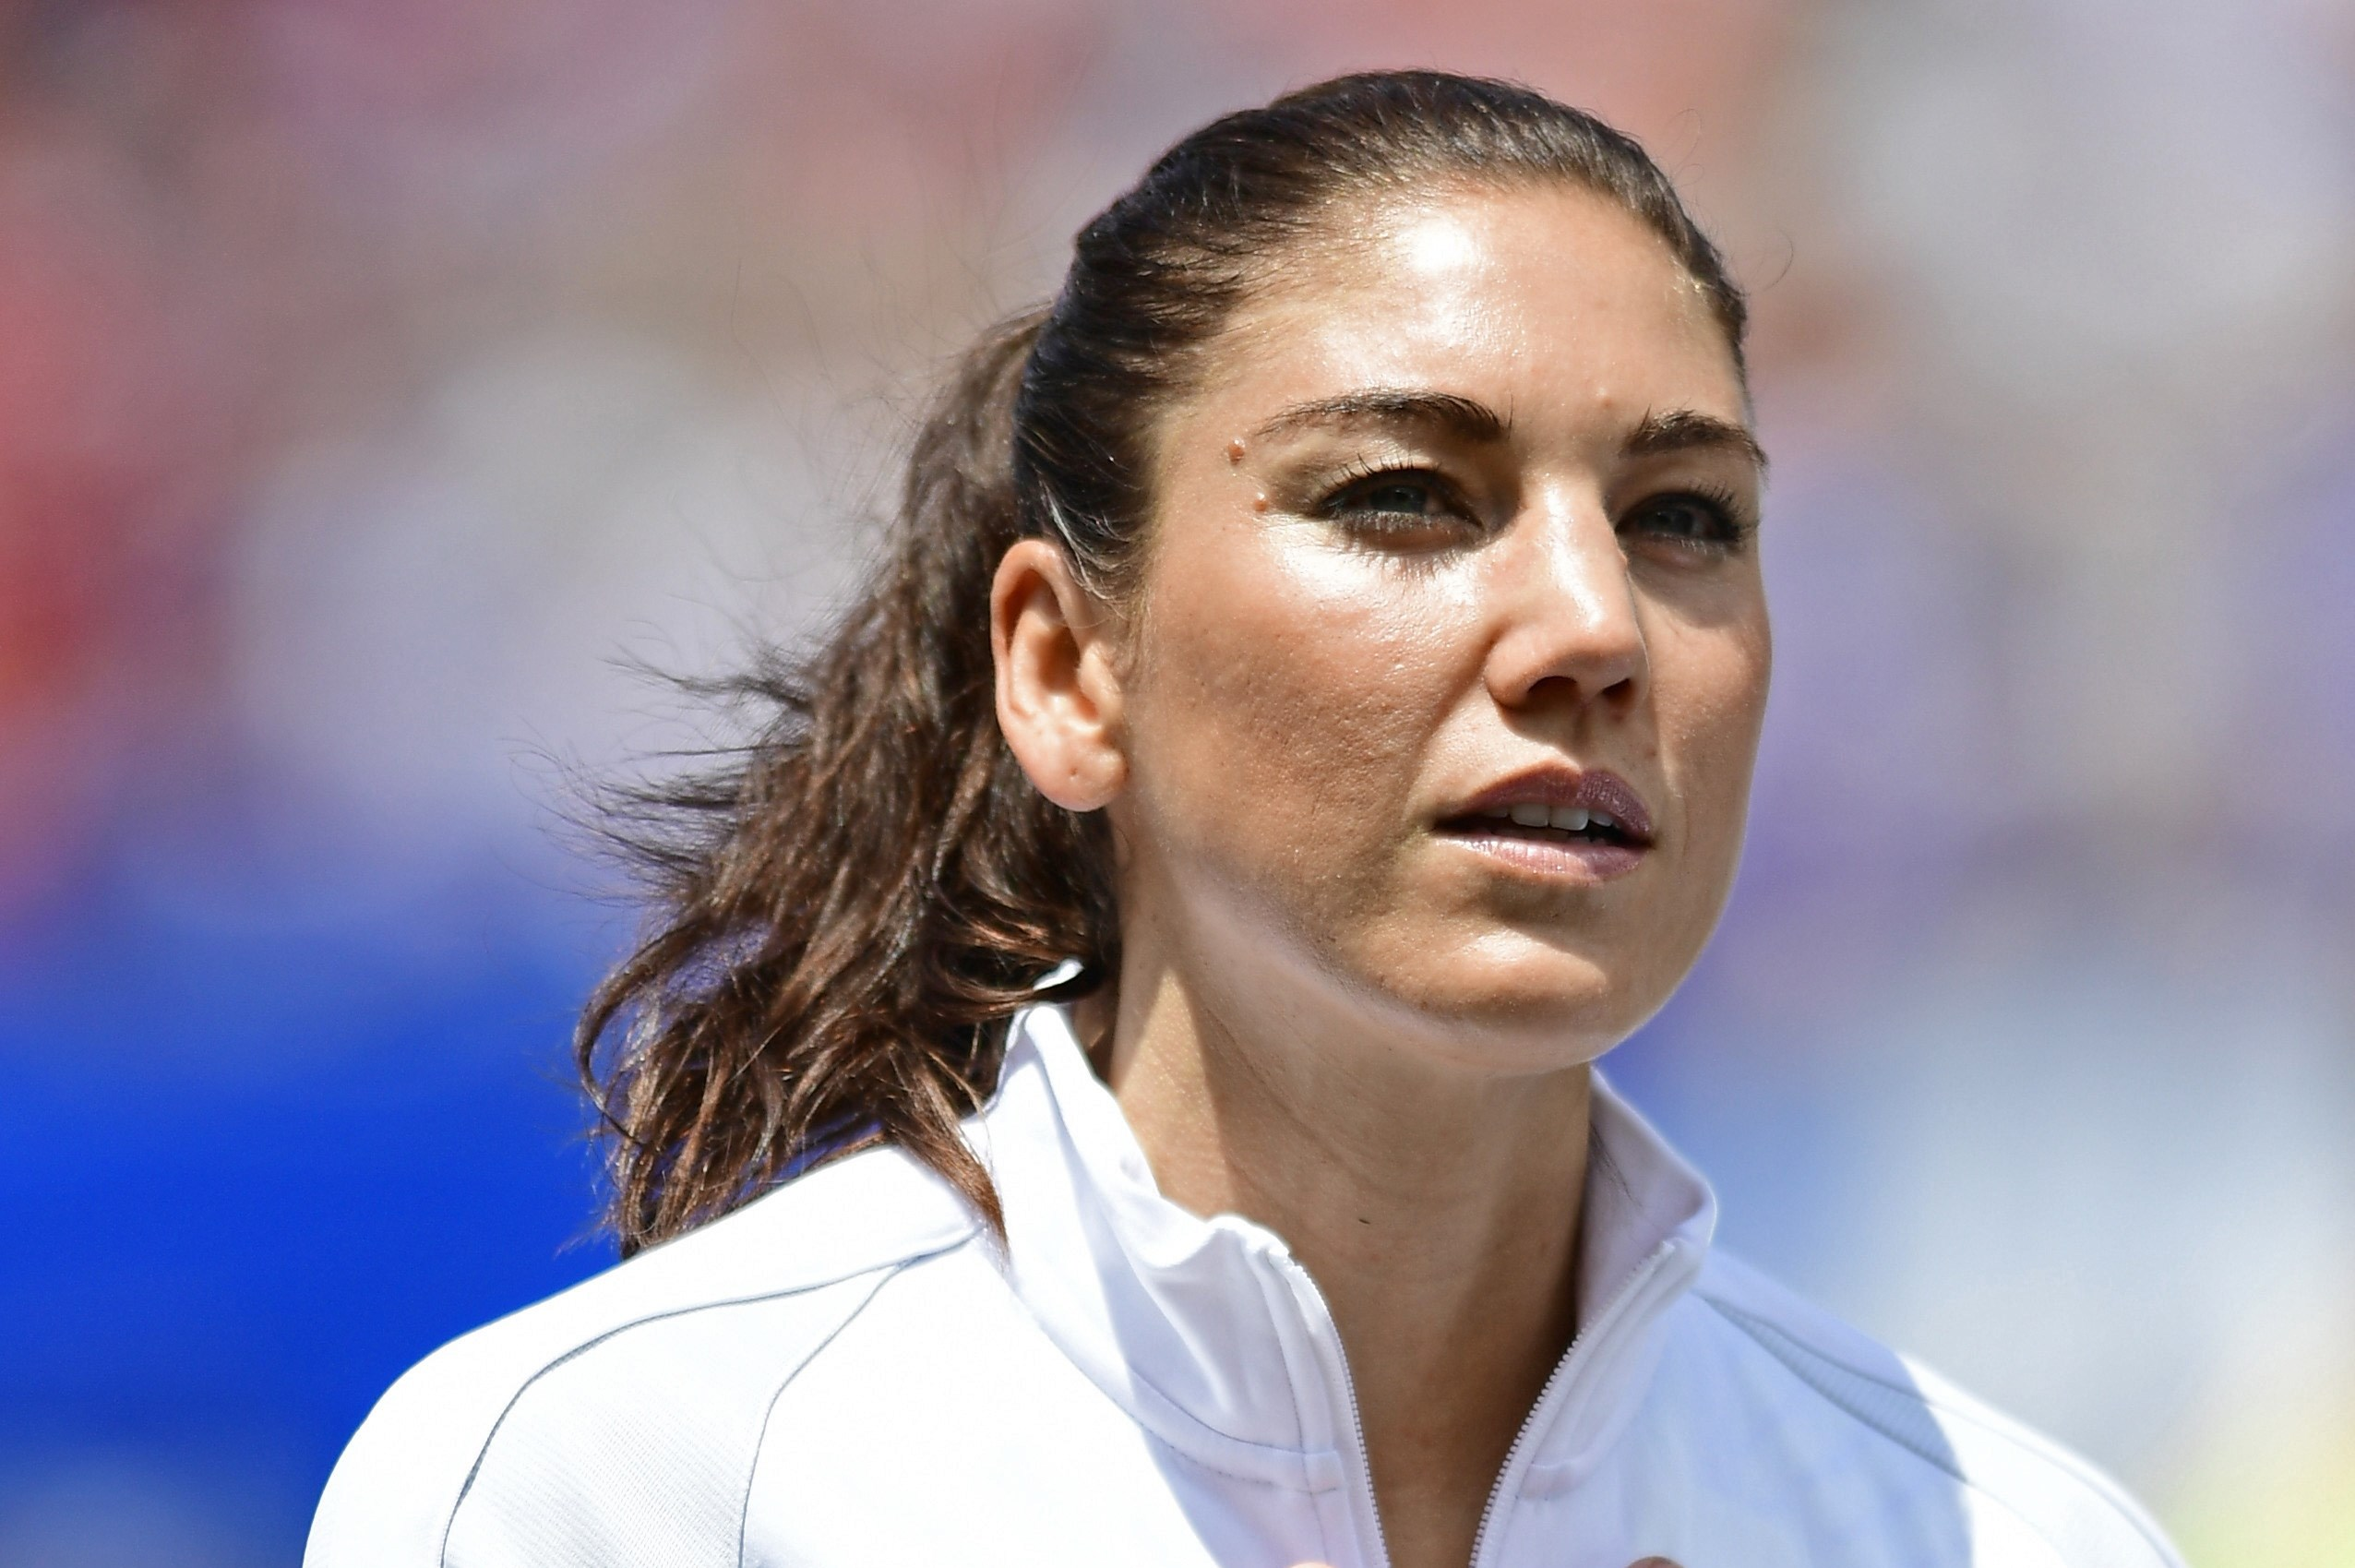 United States goal keeper Hope Solo stands for the national anthem before the start of an international friendly soccer match against Japan, Sunday, June 5, 2016, in Cleveland, Ohio. The United States won 2-0. (AP Photo/David Dermer)